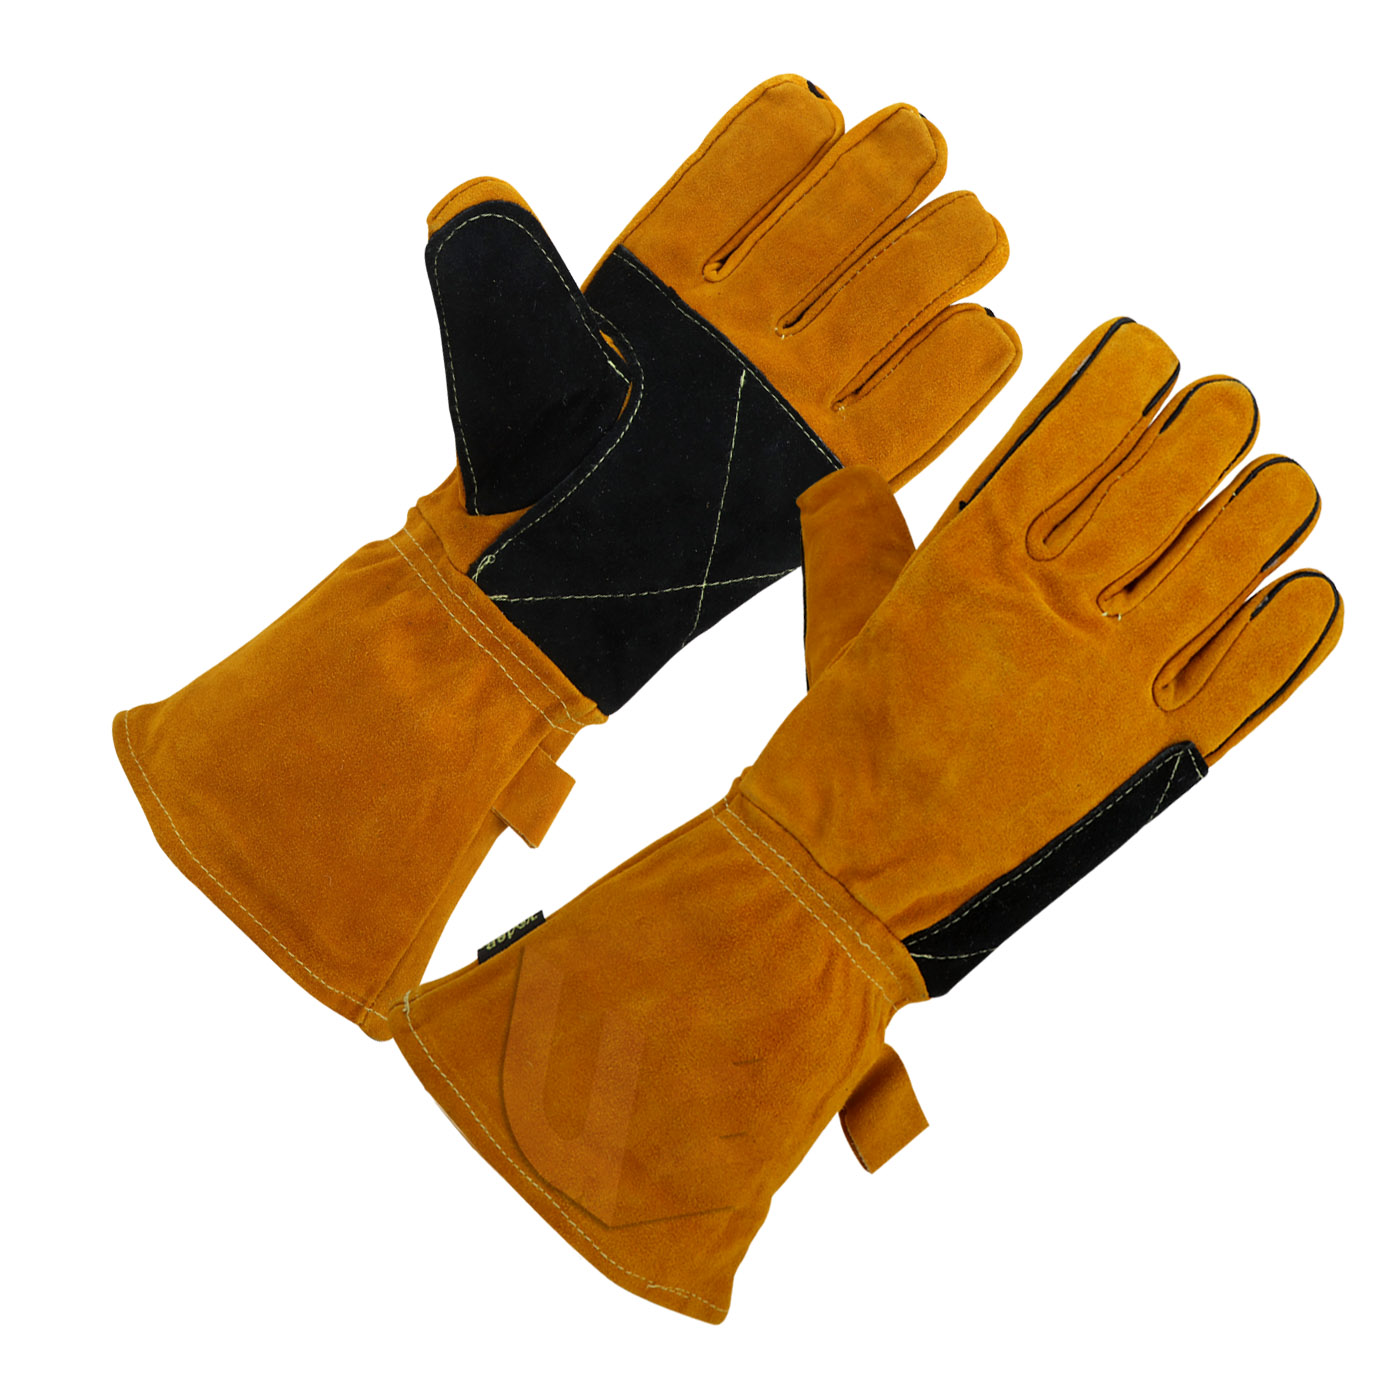 Heavy Duty Cow Split Welding Glove With Double Palm